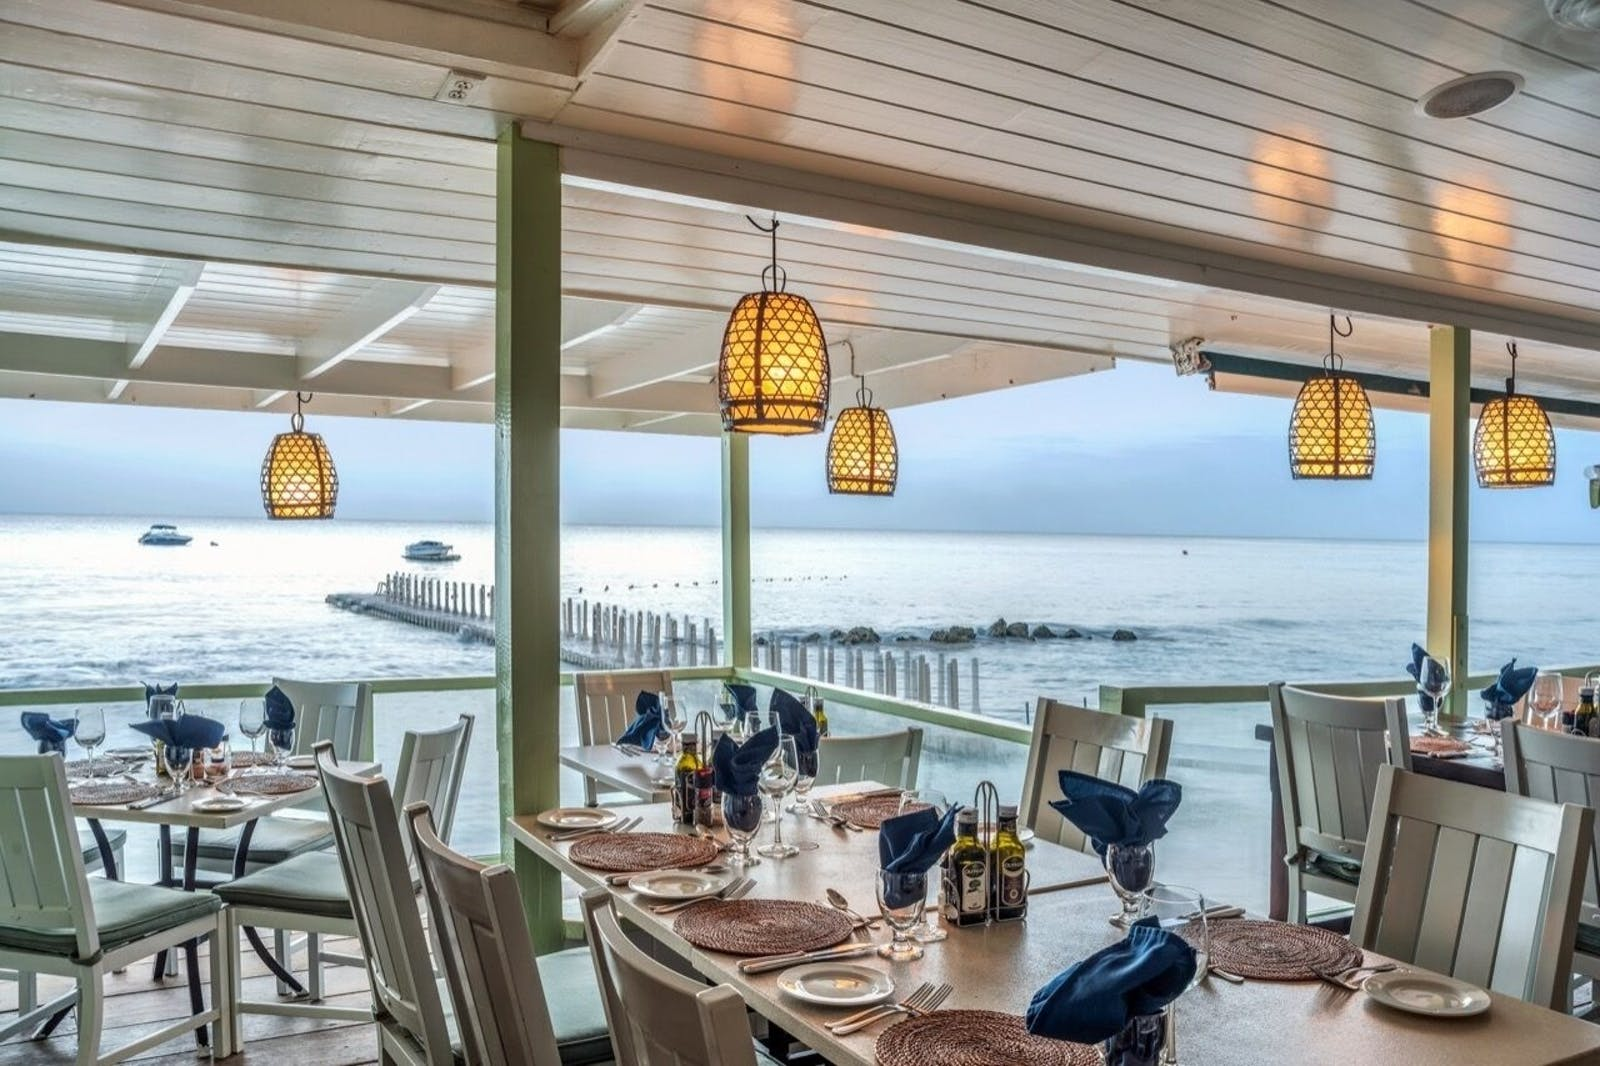 Restaurant Offering Unbelievable Views of the Caribbean Sea at Little Good Harbour, Barbados